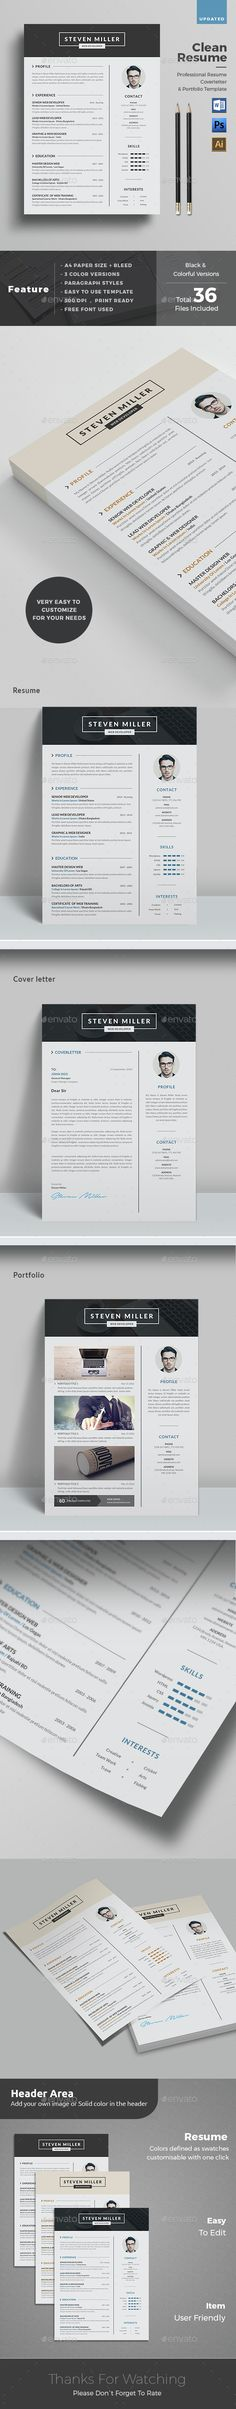 Cv And Resume Templates%0A Resume  Template CvResume